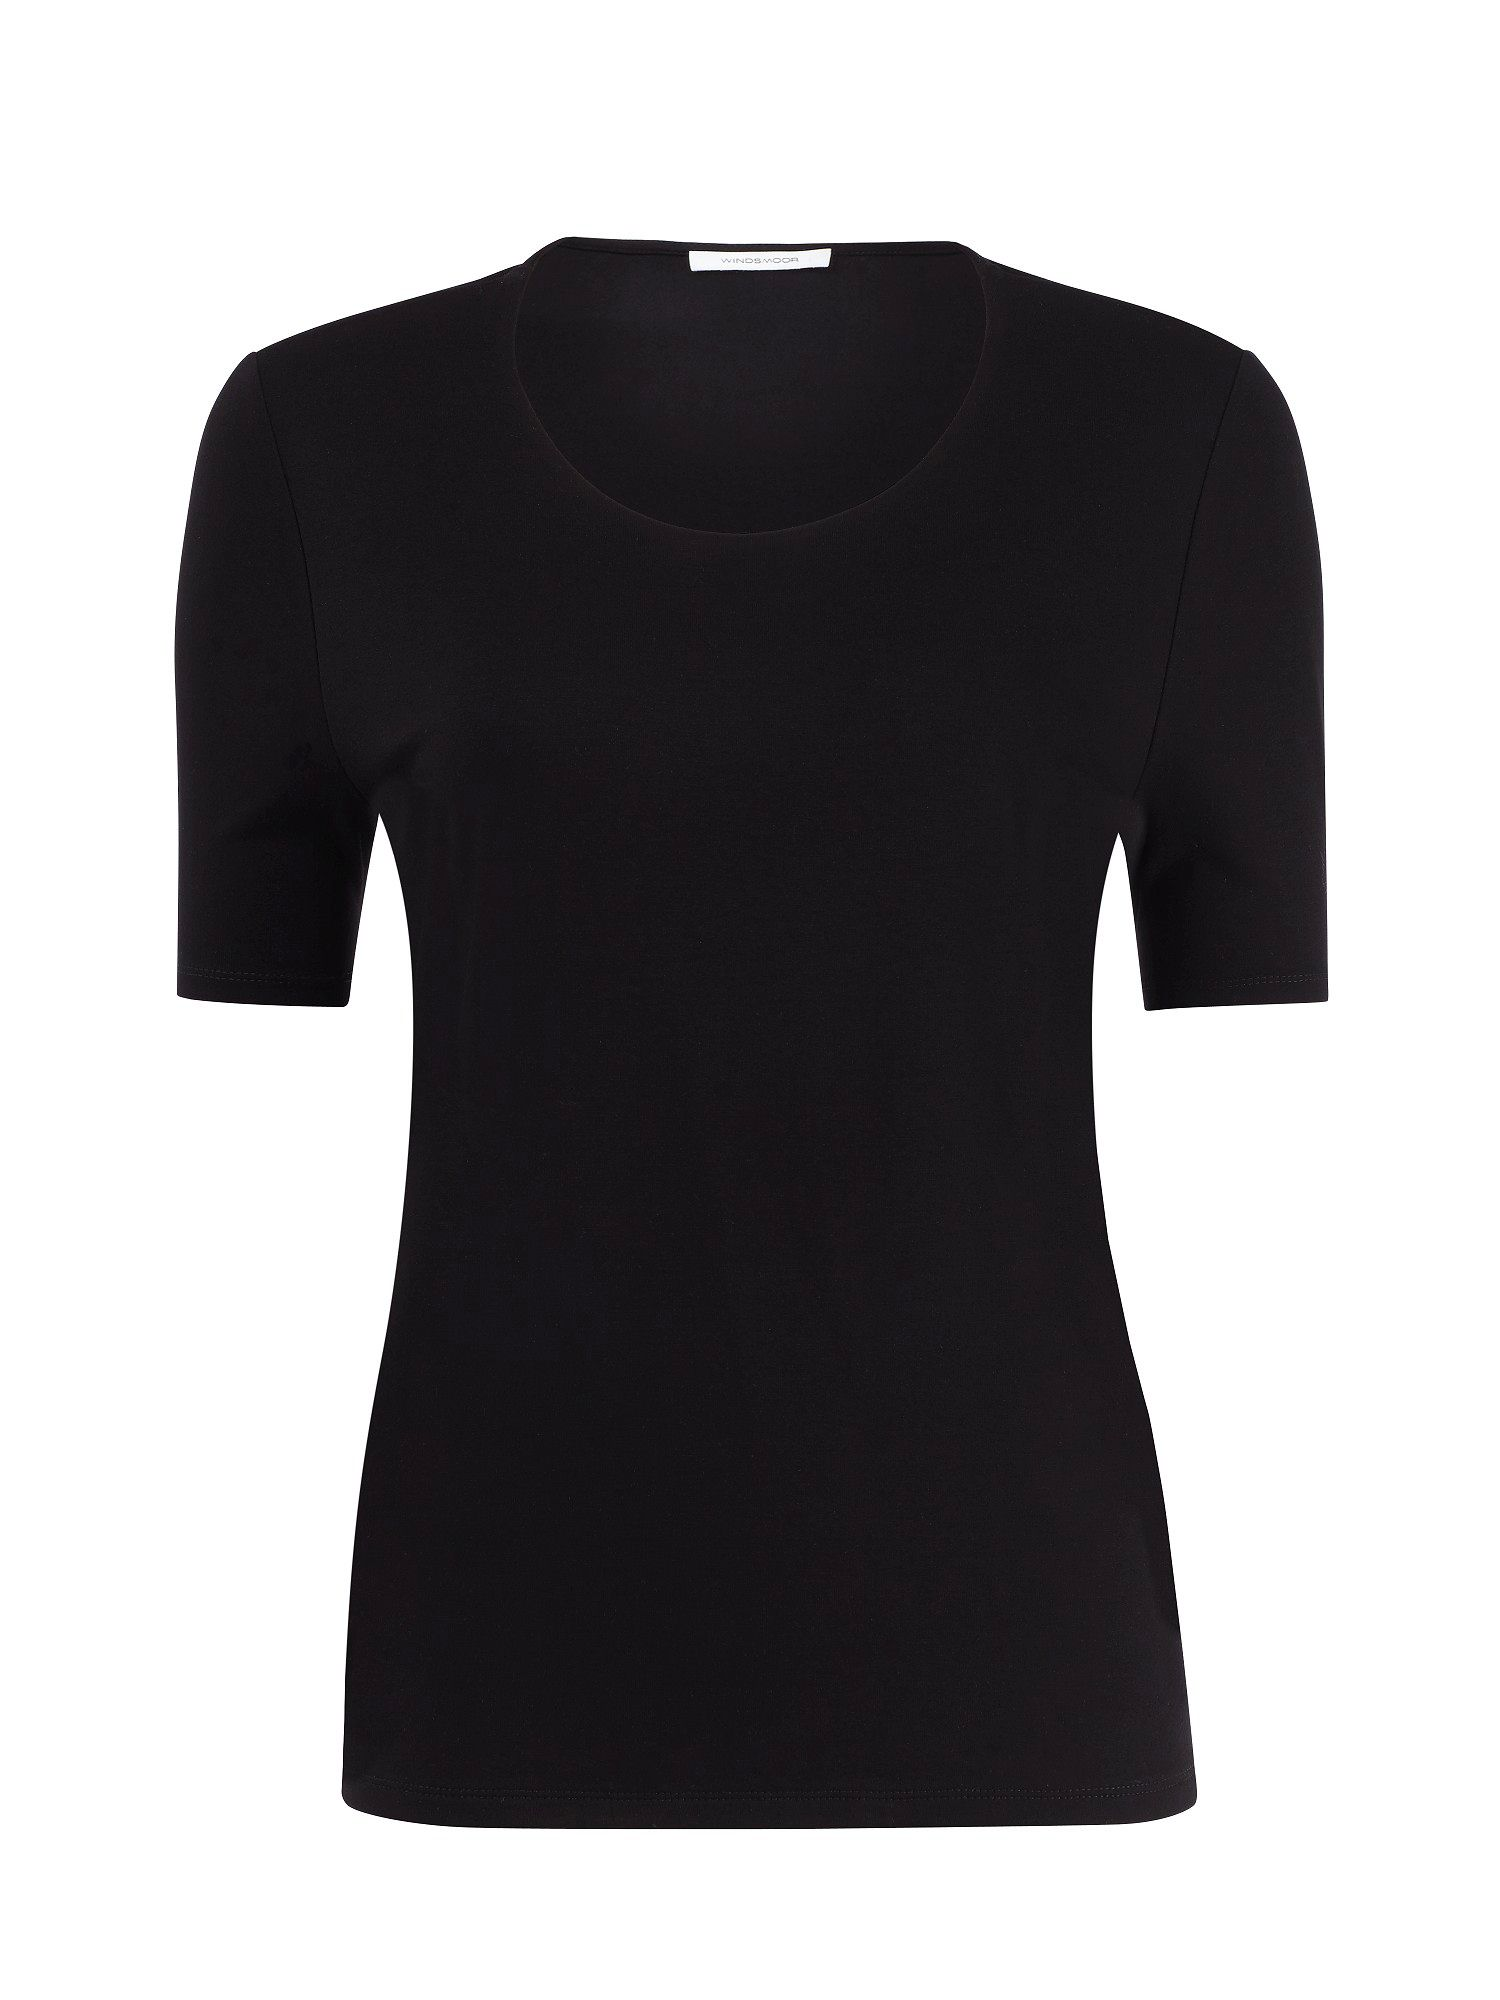 Scoop neck jersey top